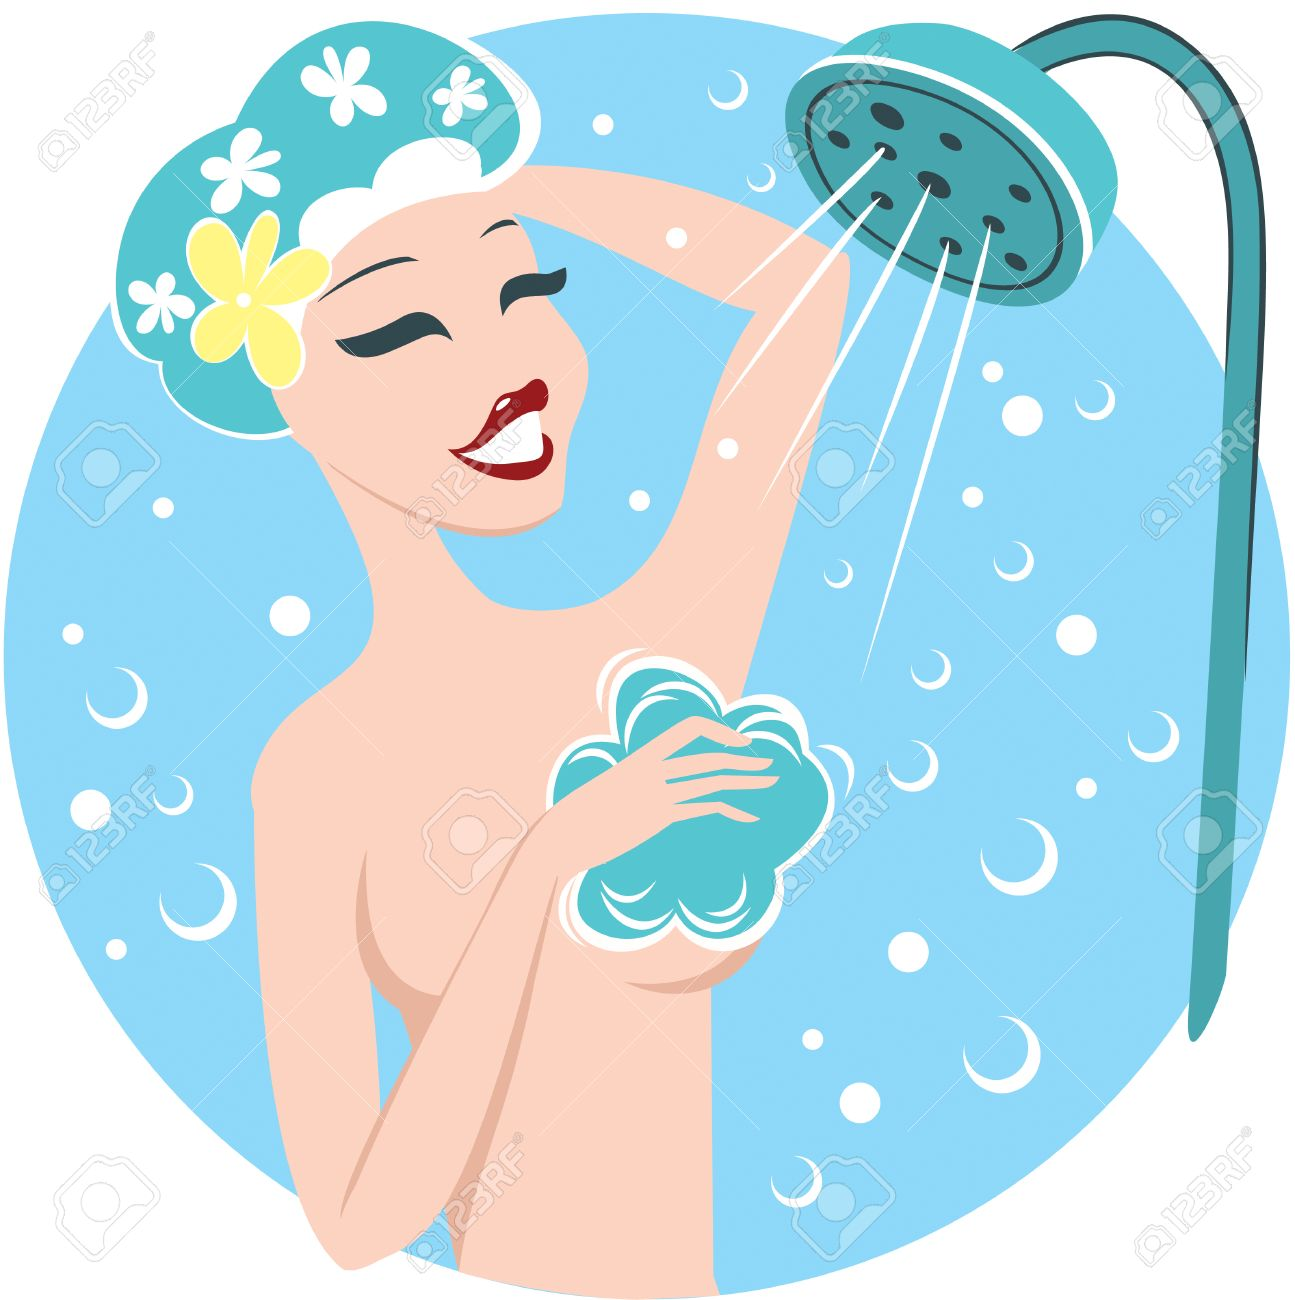 Image result for shower cartoon